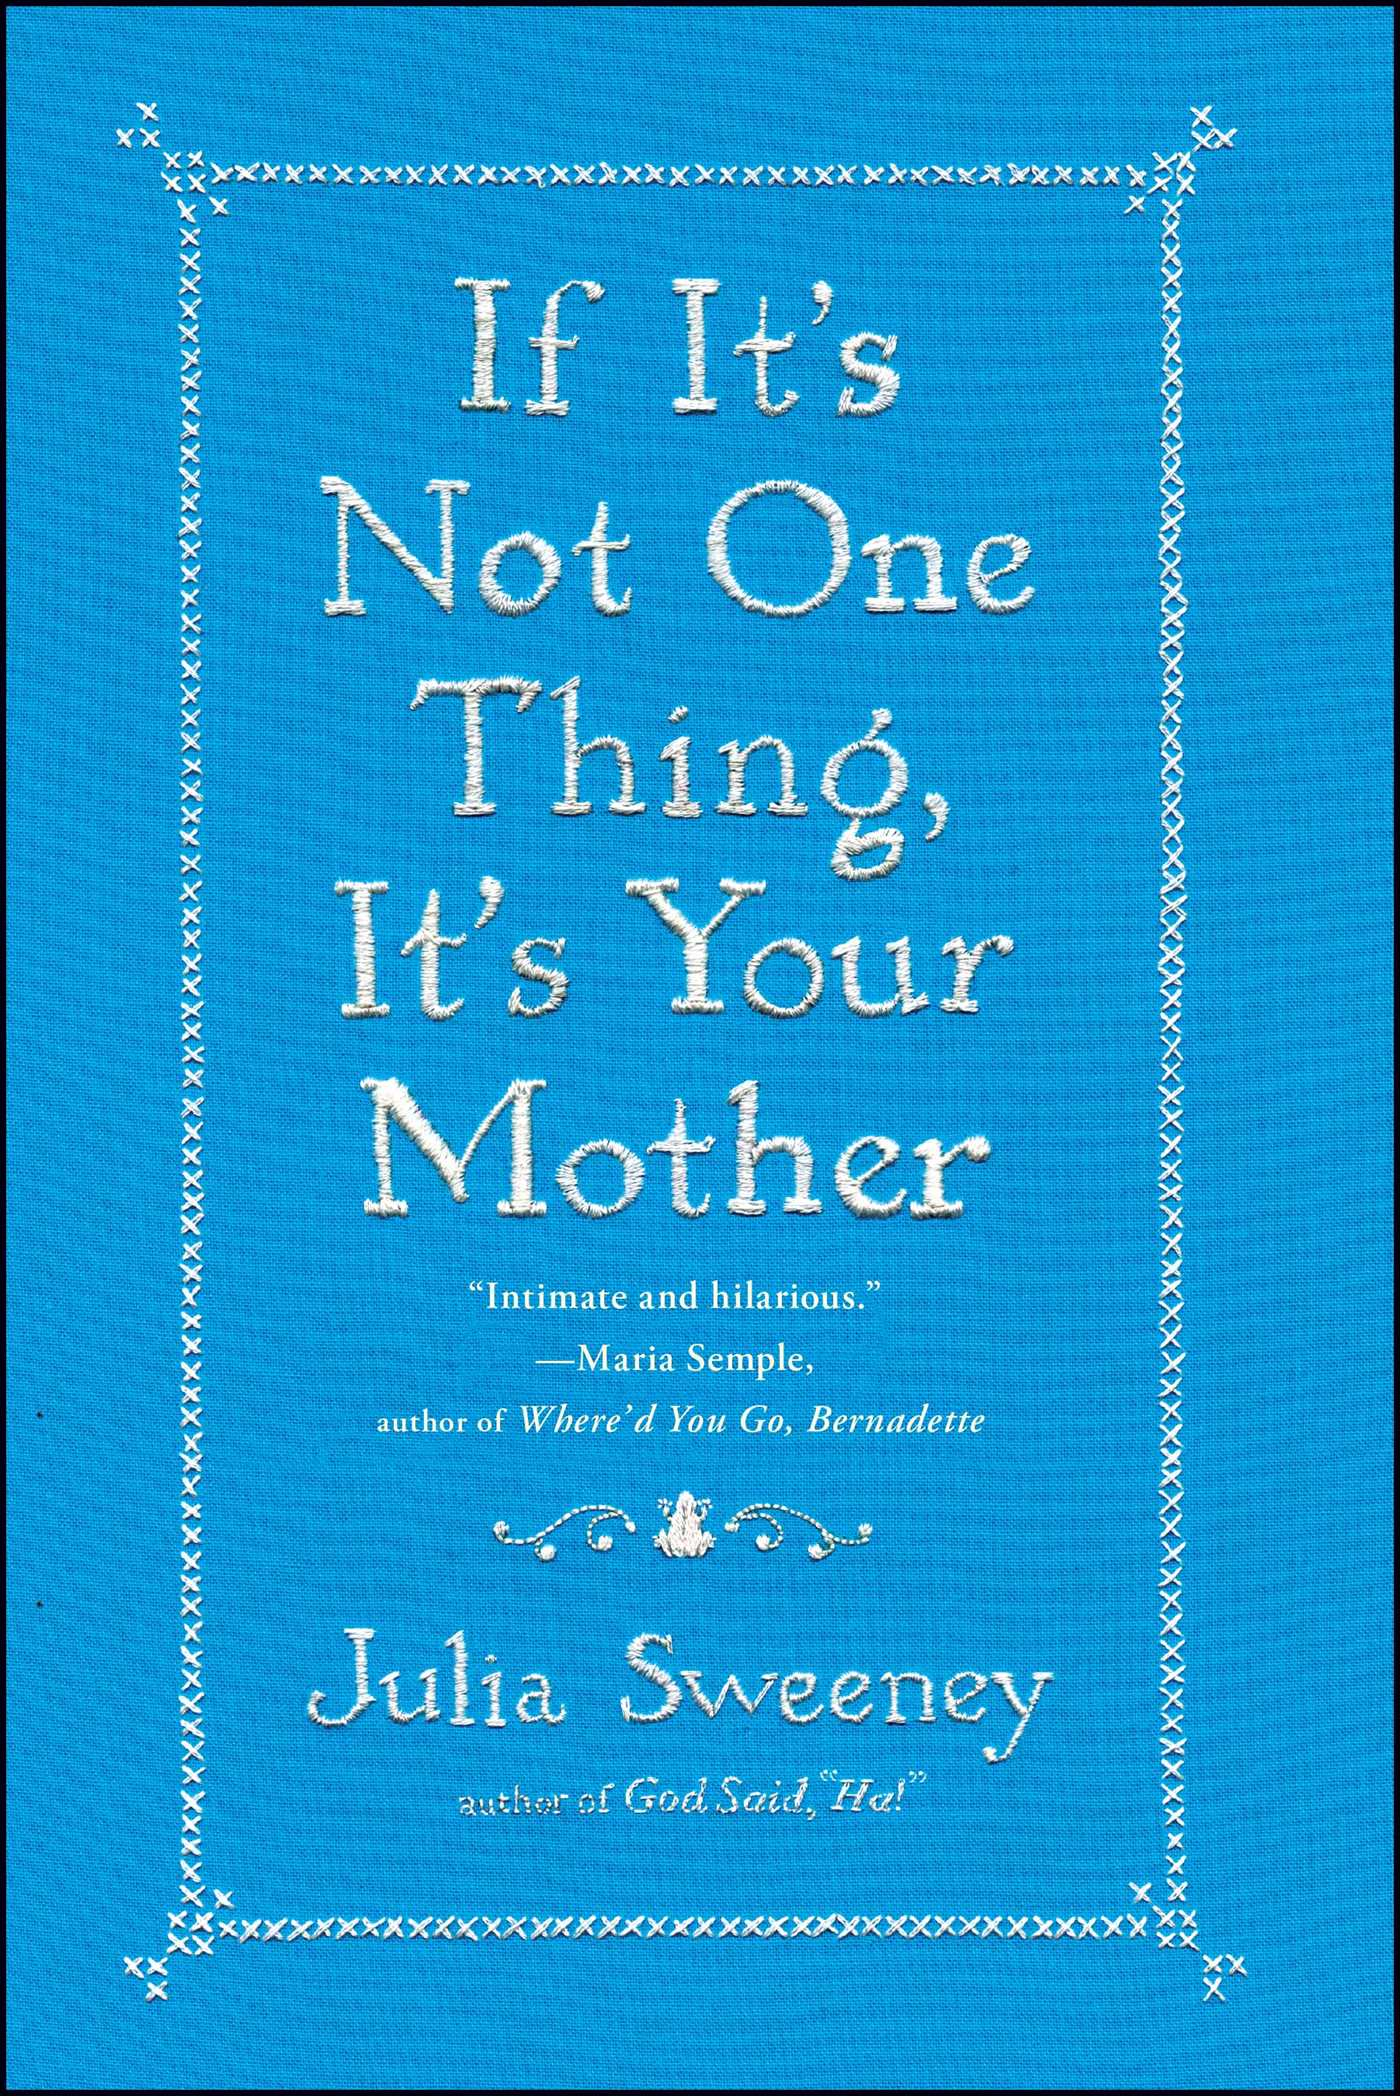 If its not one thing its your mother 9781451674057 hr